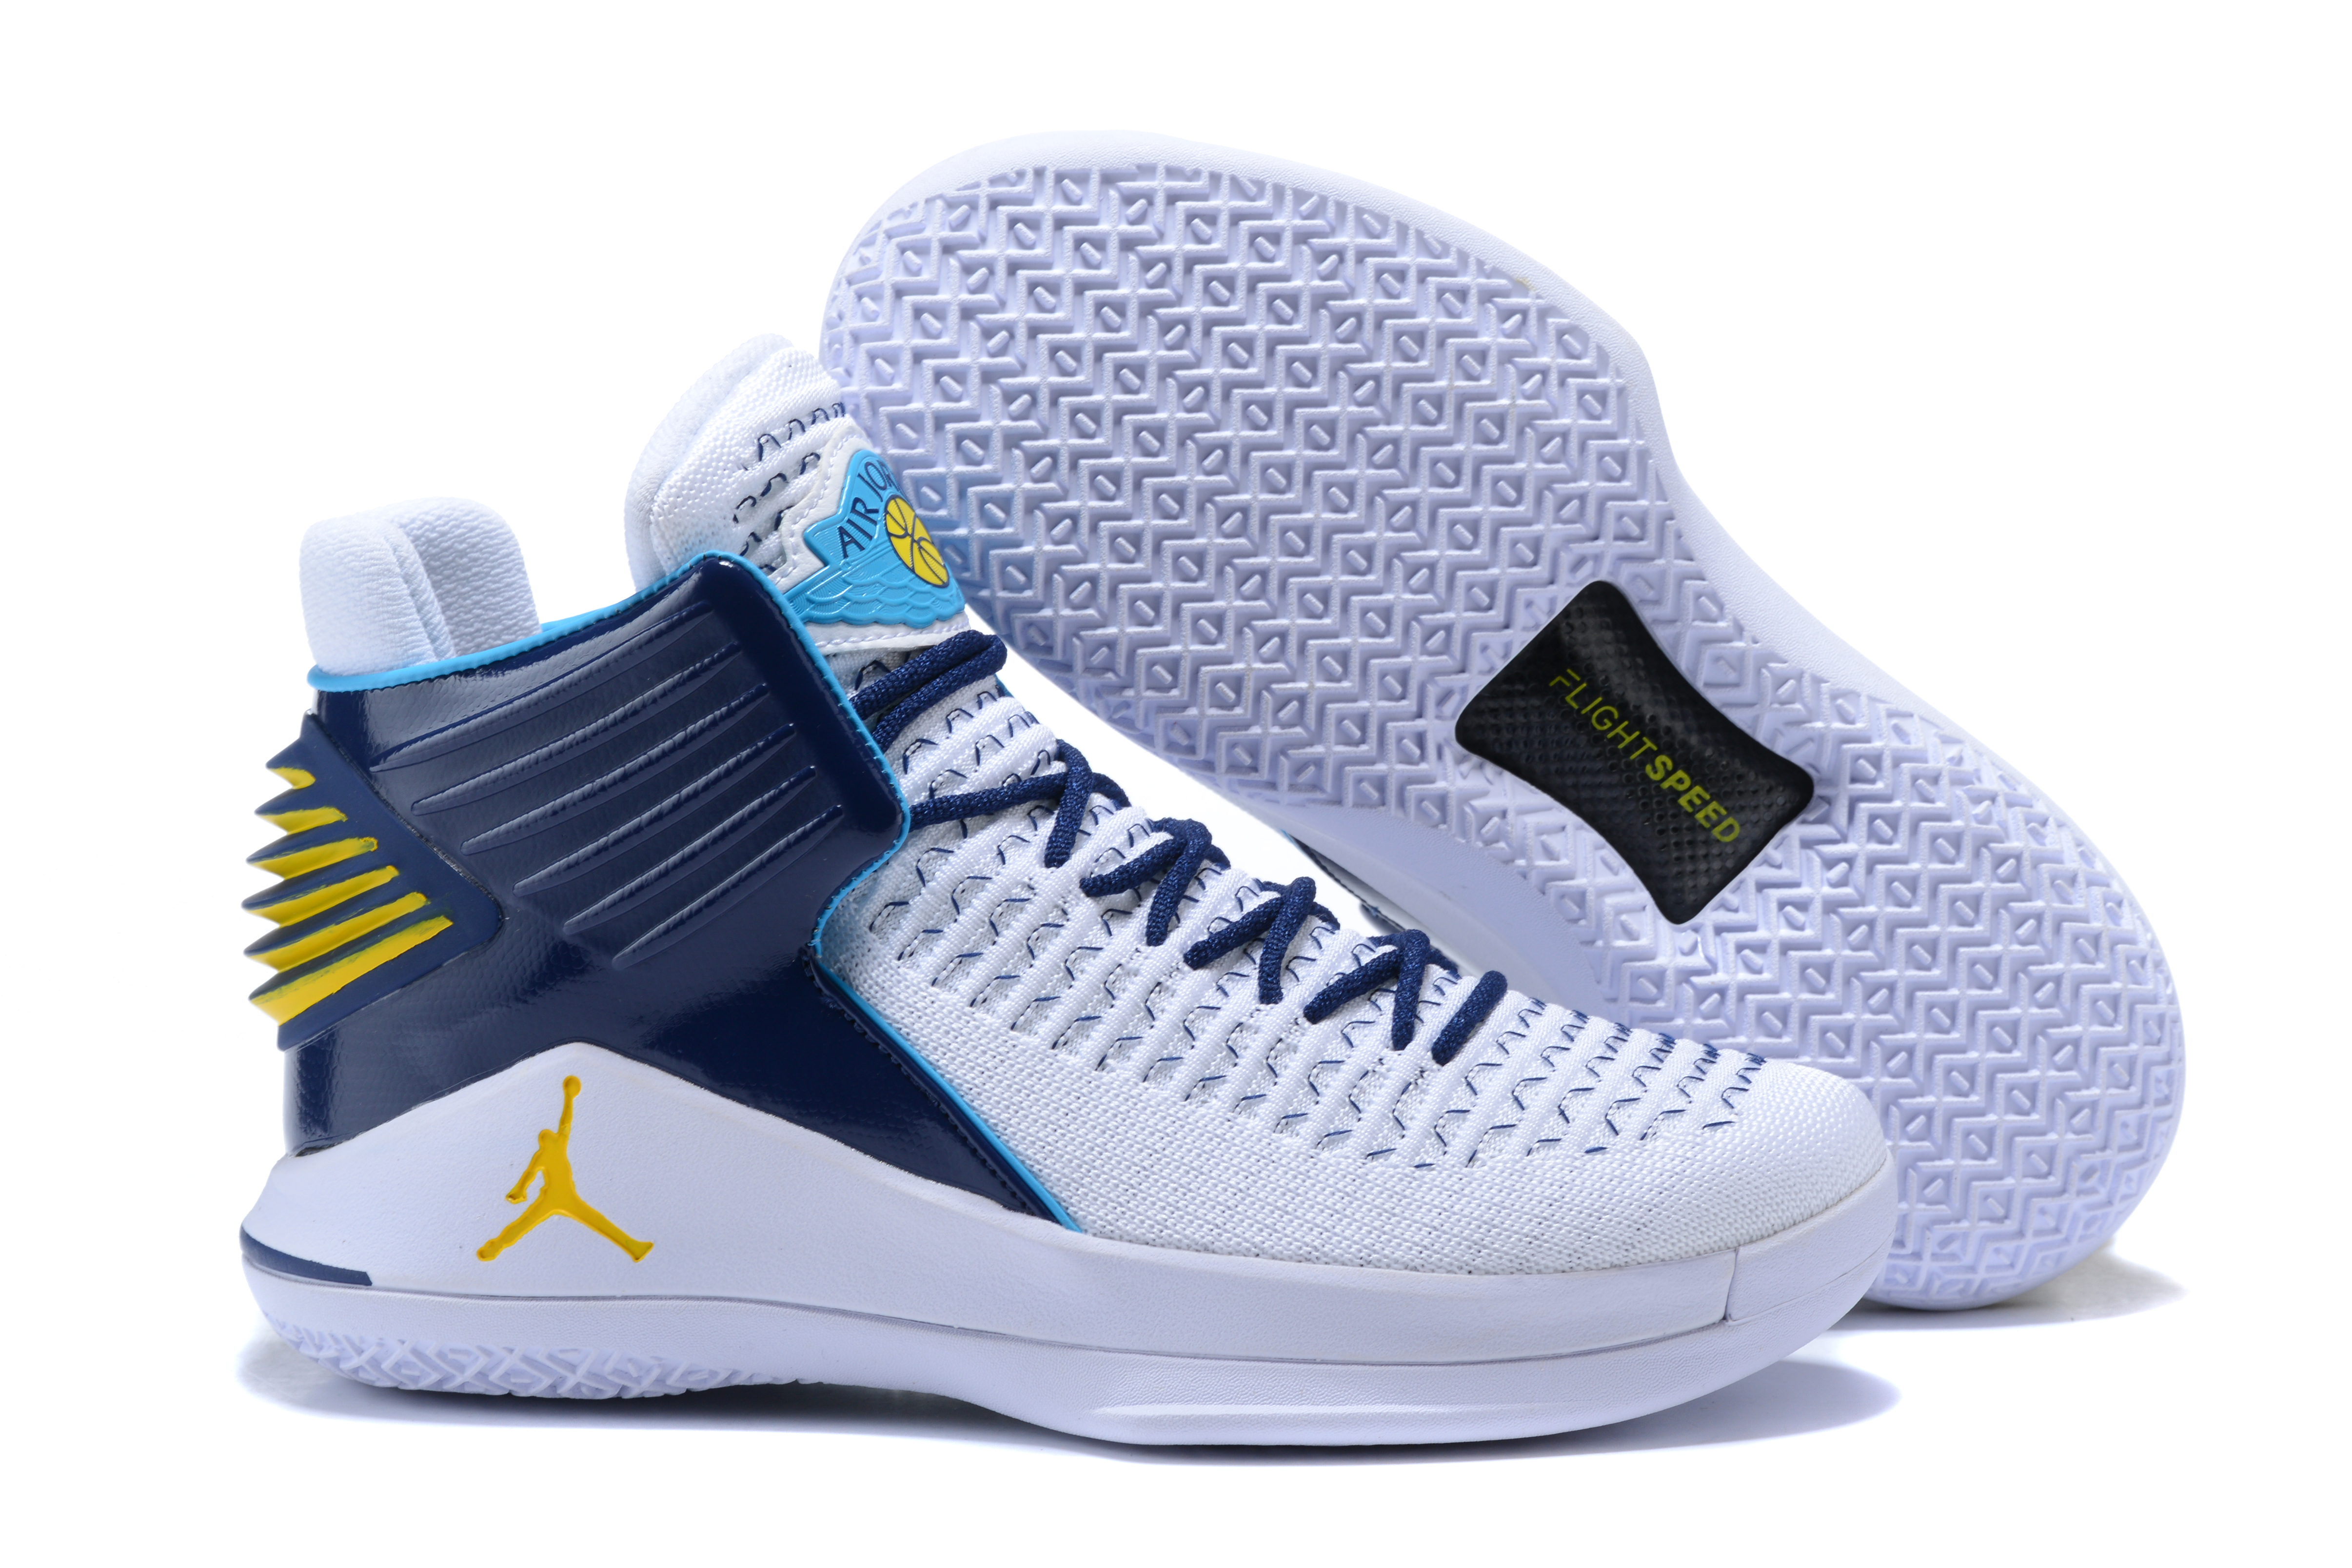 New Air Jordan 32 High White Blue Yellow